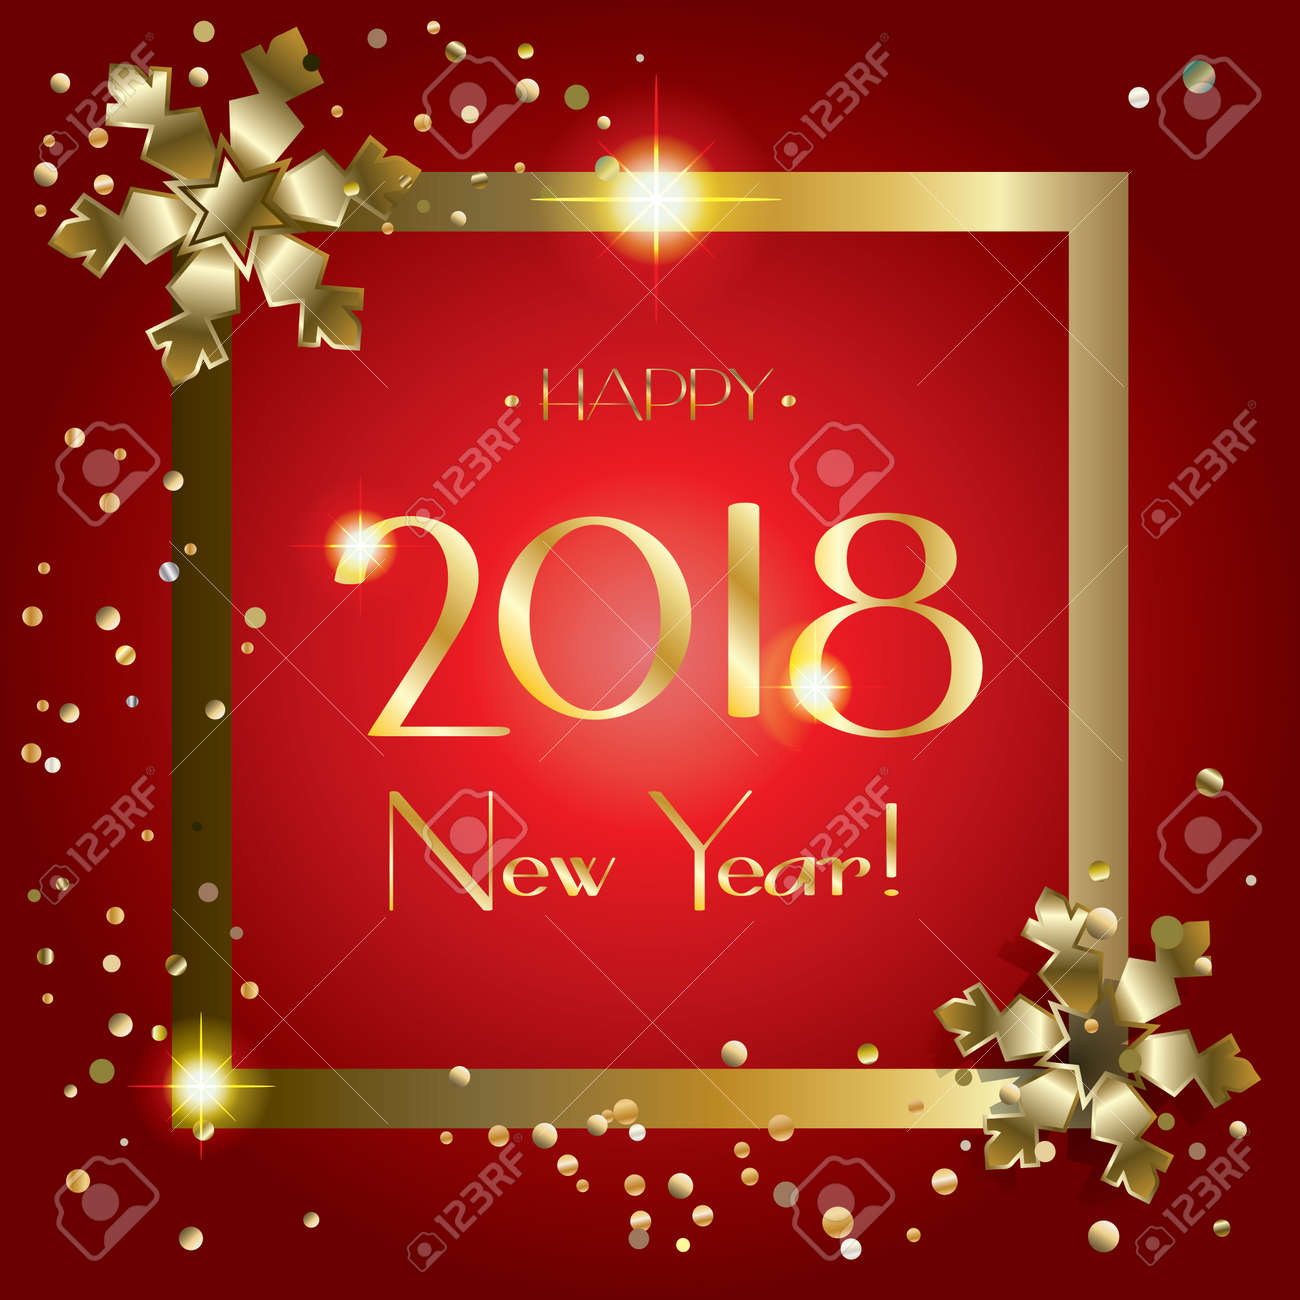 2018 happy new year greeting card luxury gold and red background template vector